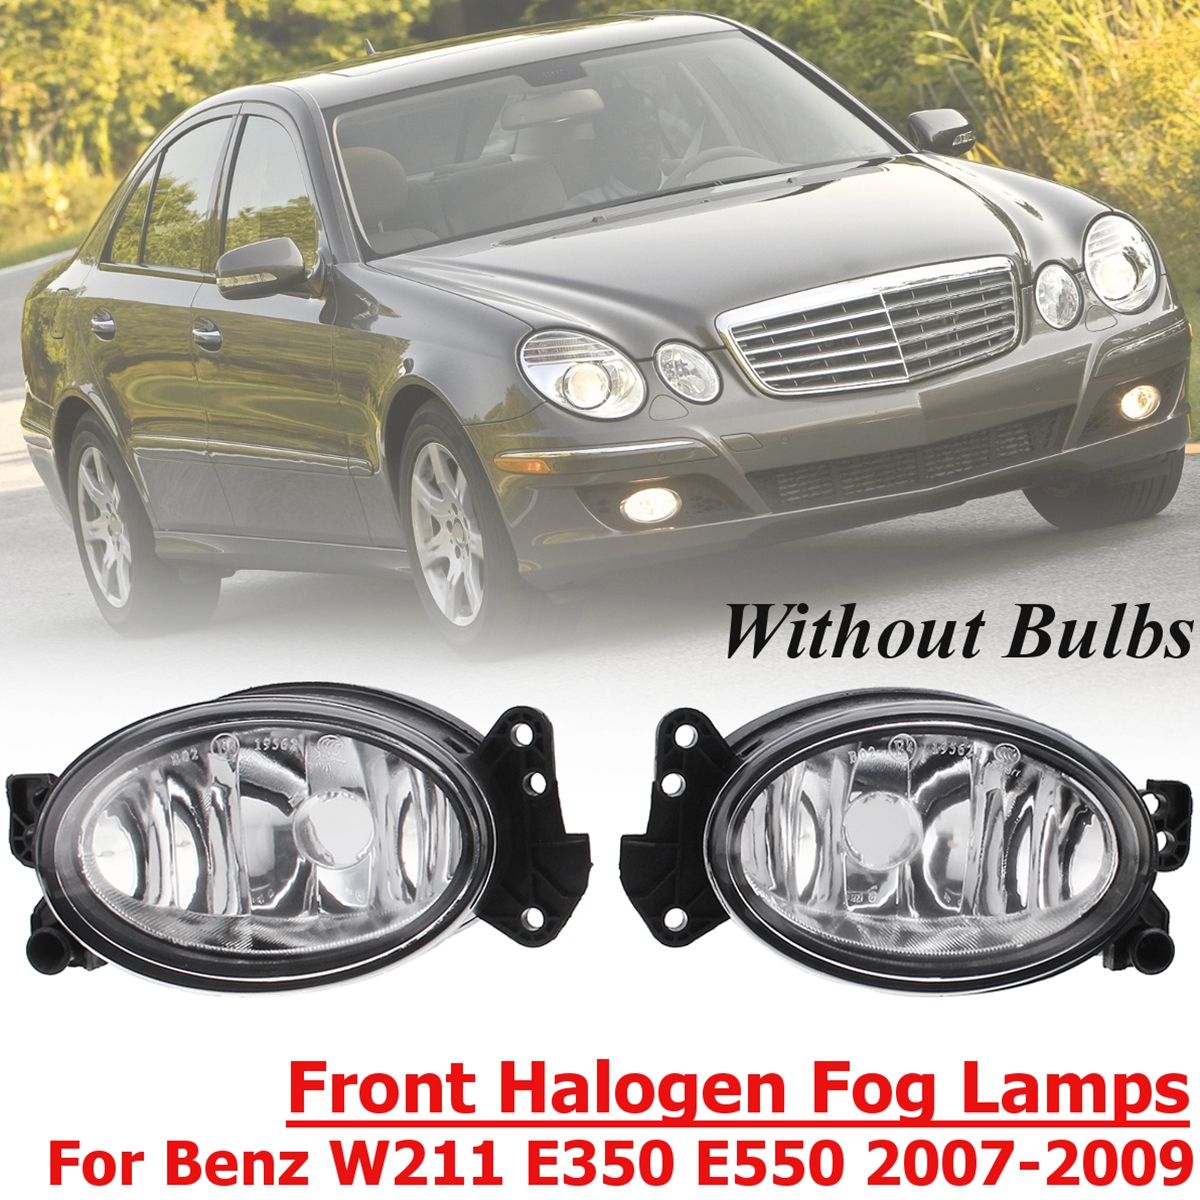 1 Pair L+R Front Fog Light Lamp No Bulb Front Halogen Fog Lights Lamps Front for Benz W211 E350 E550 2007-2009 for audi q7 2007 2008 2009 new pair of halogen front fog lamp fog light with bulbs 8p0941699a 8p0941700a